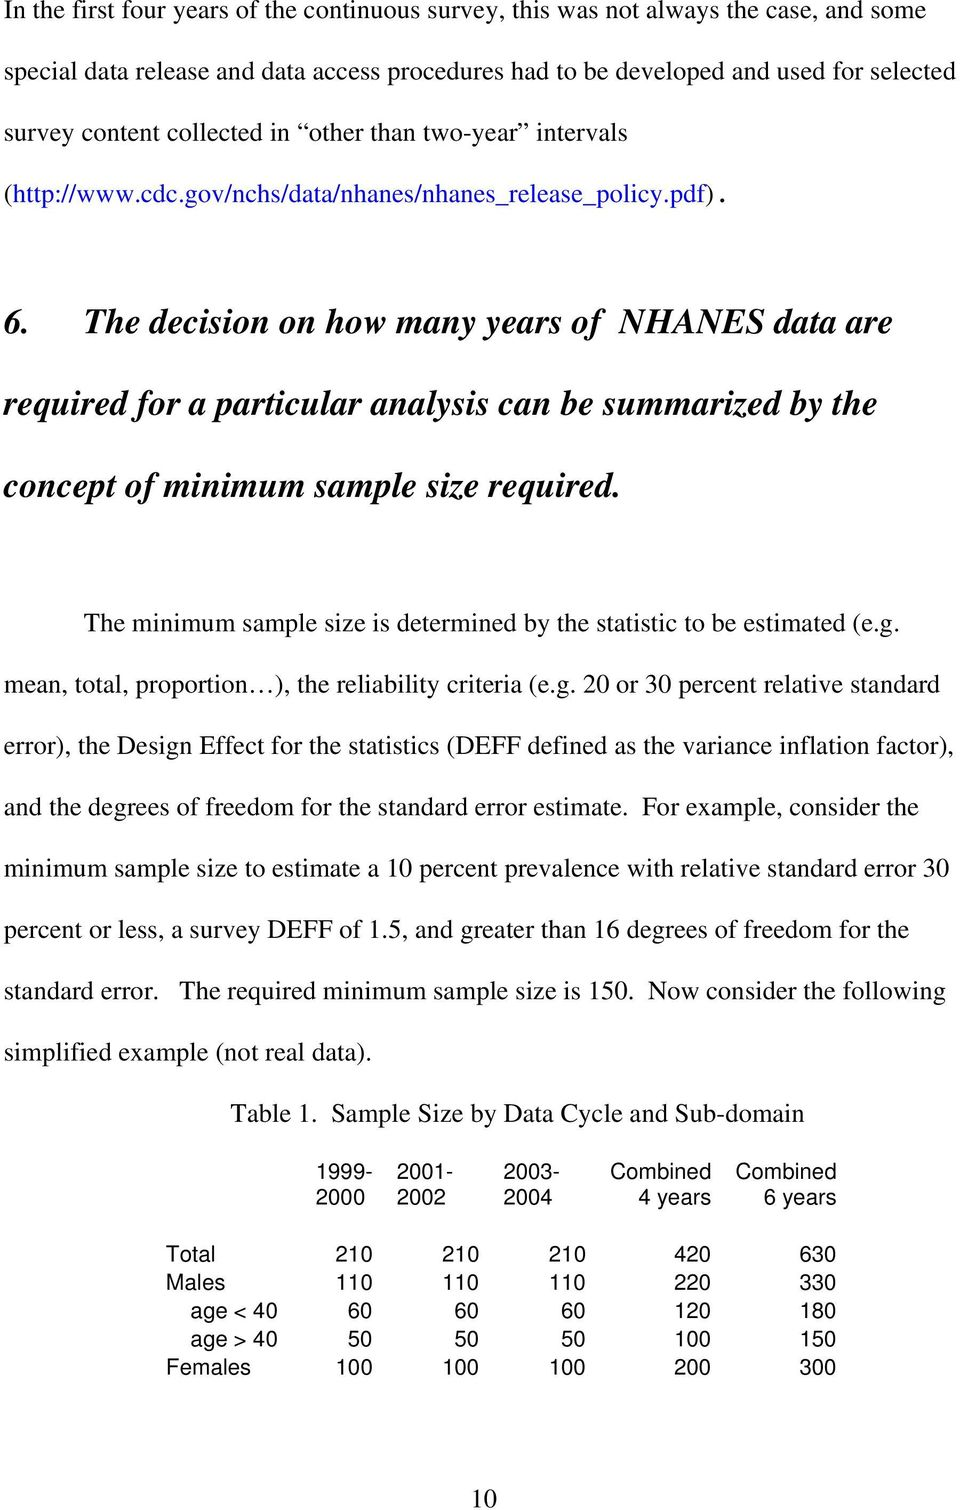 The decision on how many years of NHANES data are required for a particular analysis can be summarized by the concept of minimum sample size required.